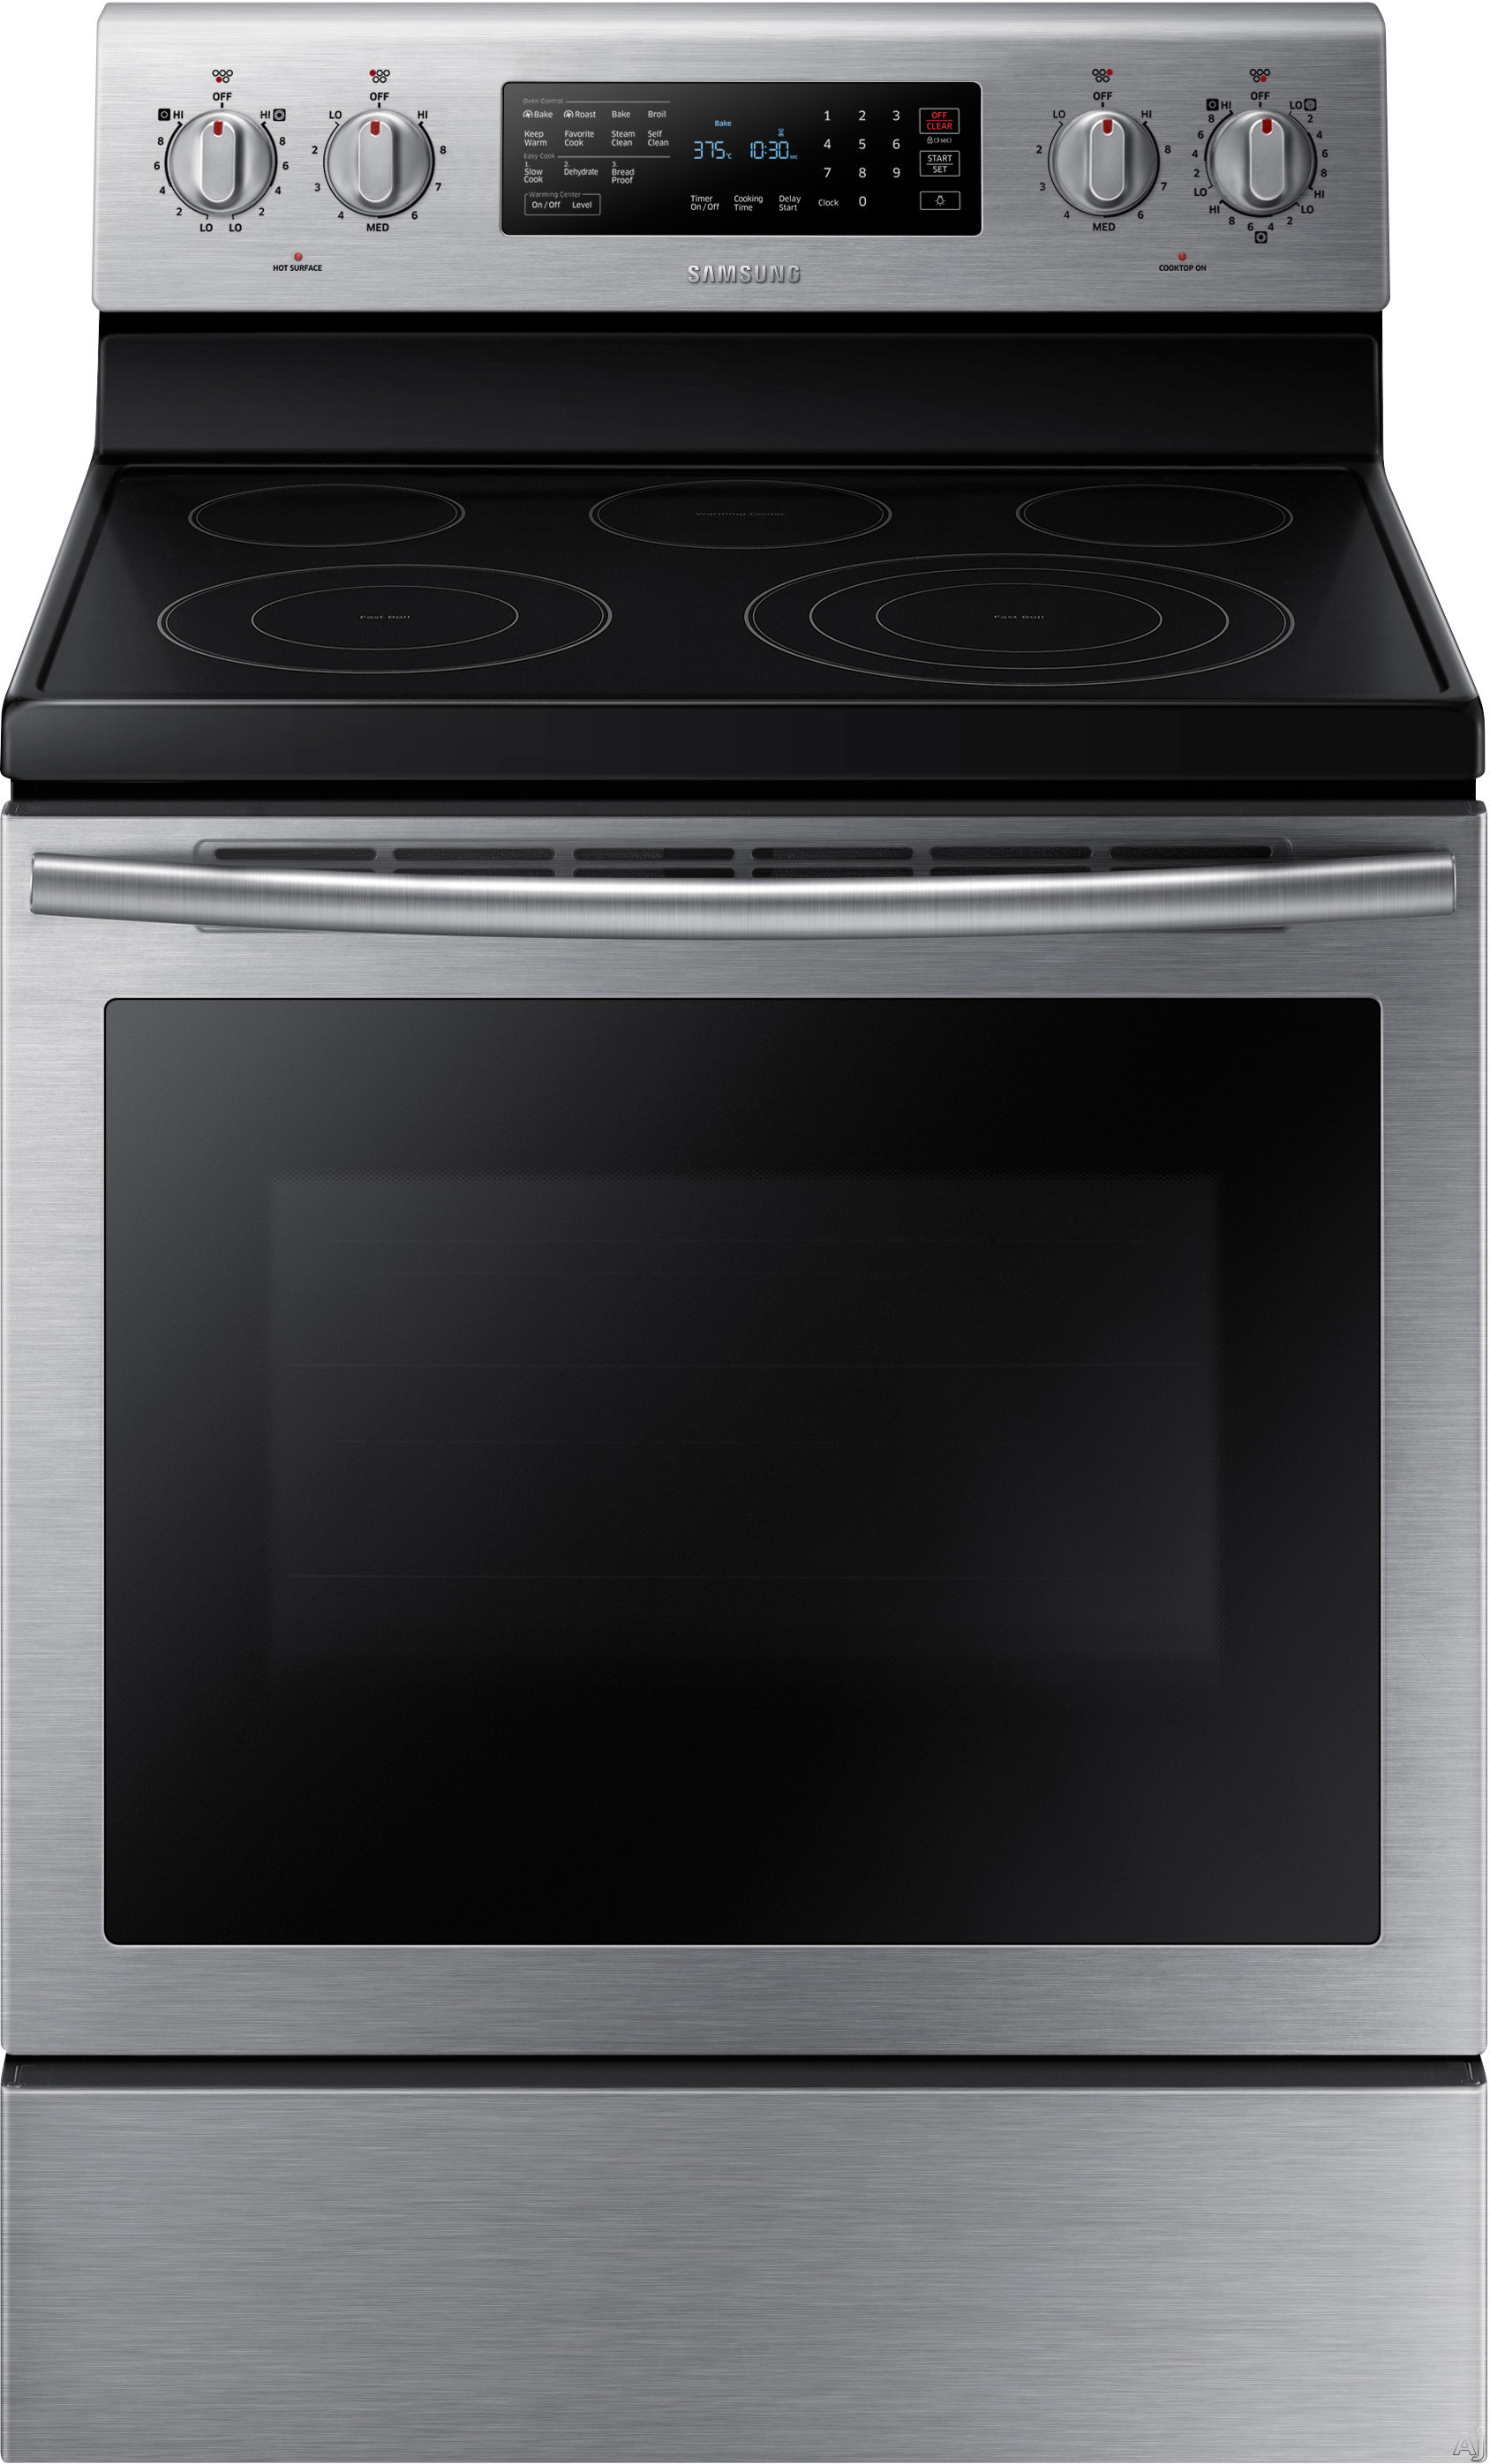 Samsung Ne59j7630ss 30 Inch Freestanding Electric Range With 5 9 Cu Ft True Convection Oven Smoothtop Elements 6 3 300w Burner